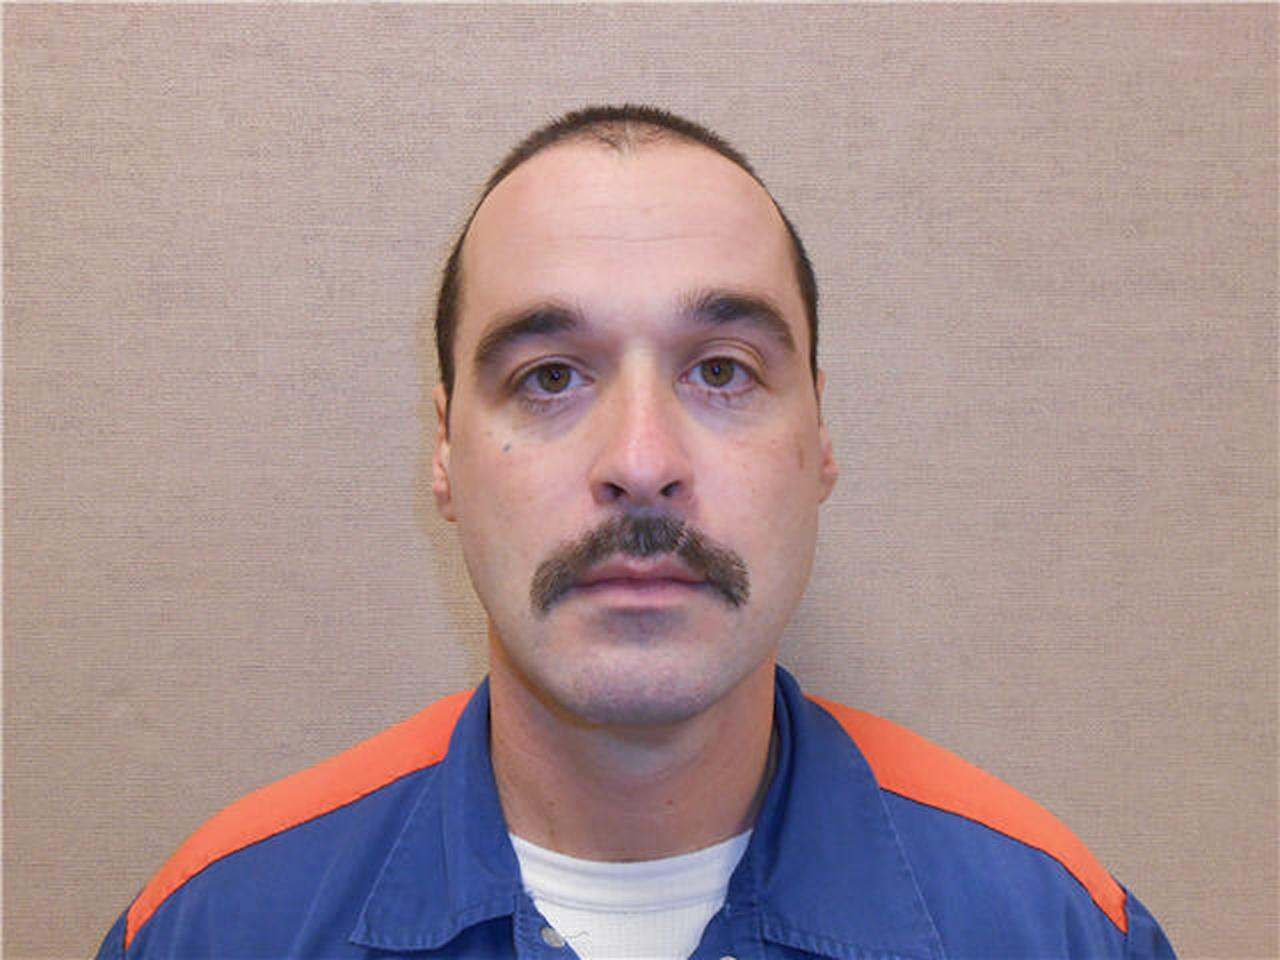 This Feb. 11, 2013 photo provided by the Michigan Department of Corrections shows Michael David Elliot. Elliot, who is serving life behind bars for murder in four 1993 deaths in Michigan, has escaped from prison and may have abducted a woman before she got away in Indiana, according to officials. Michigan Department of Corrections spokesman Russ Marlan says in an email that 40-year-old Elliot was discovered missing about 9:30 p.m. Sunday, Feb. 2, 2014, from the Ionia Correctional Facility in mid-Michigan. (AP Photo/Michigan Department of Corrections)